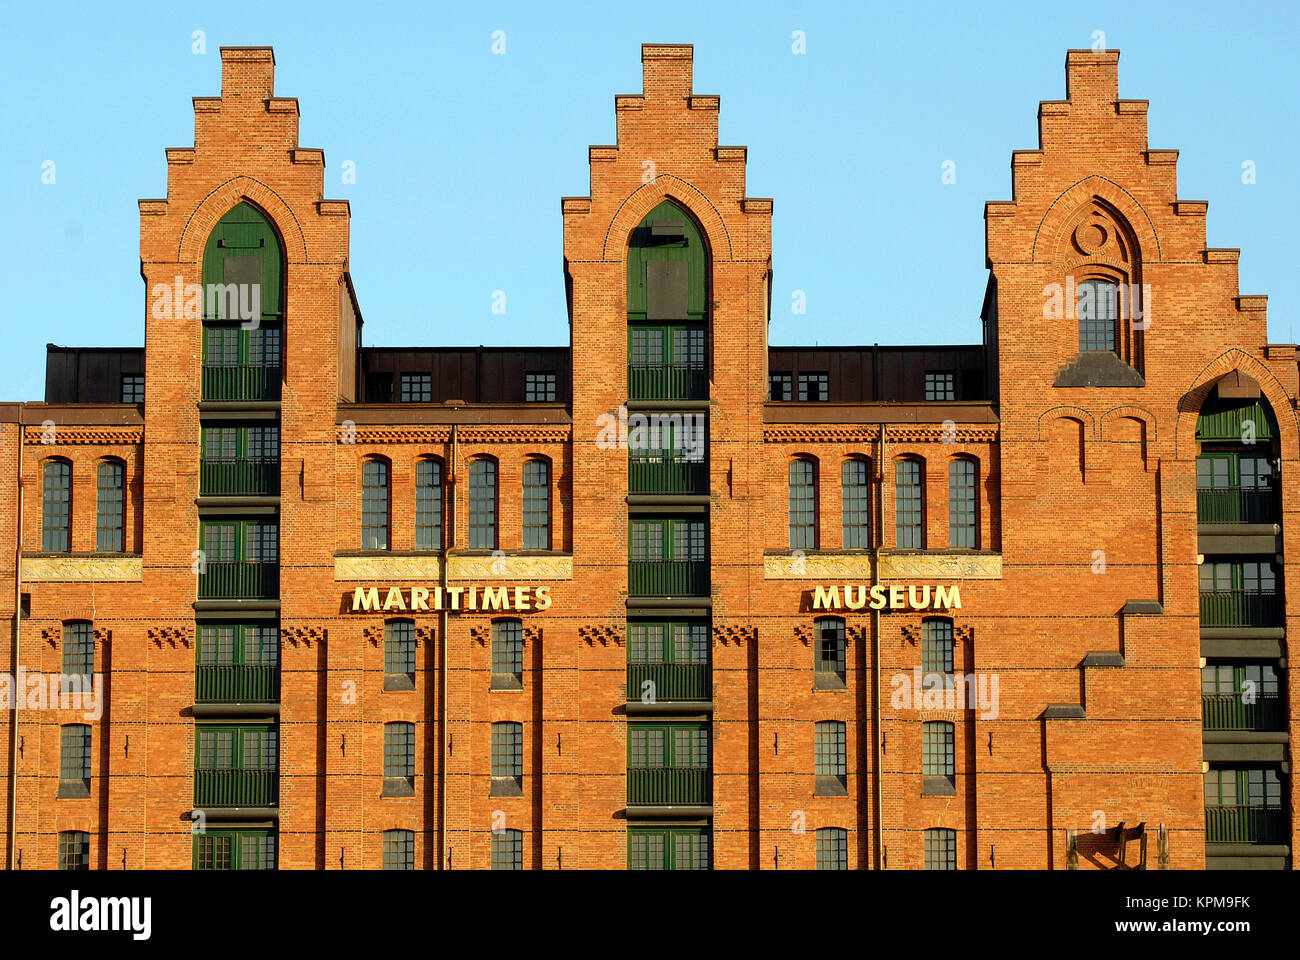 Hamburg, one of the most beautiful and most popular tourist destinations in the world. International Maritime museum - Stock Image